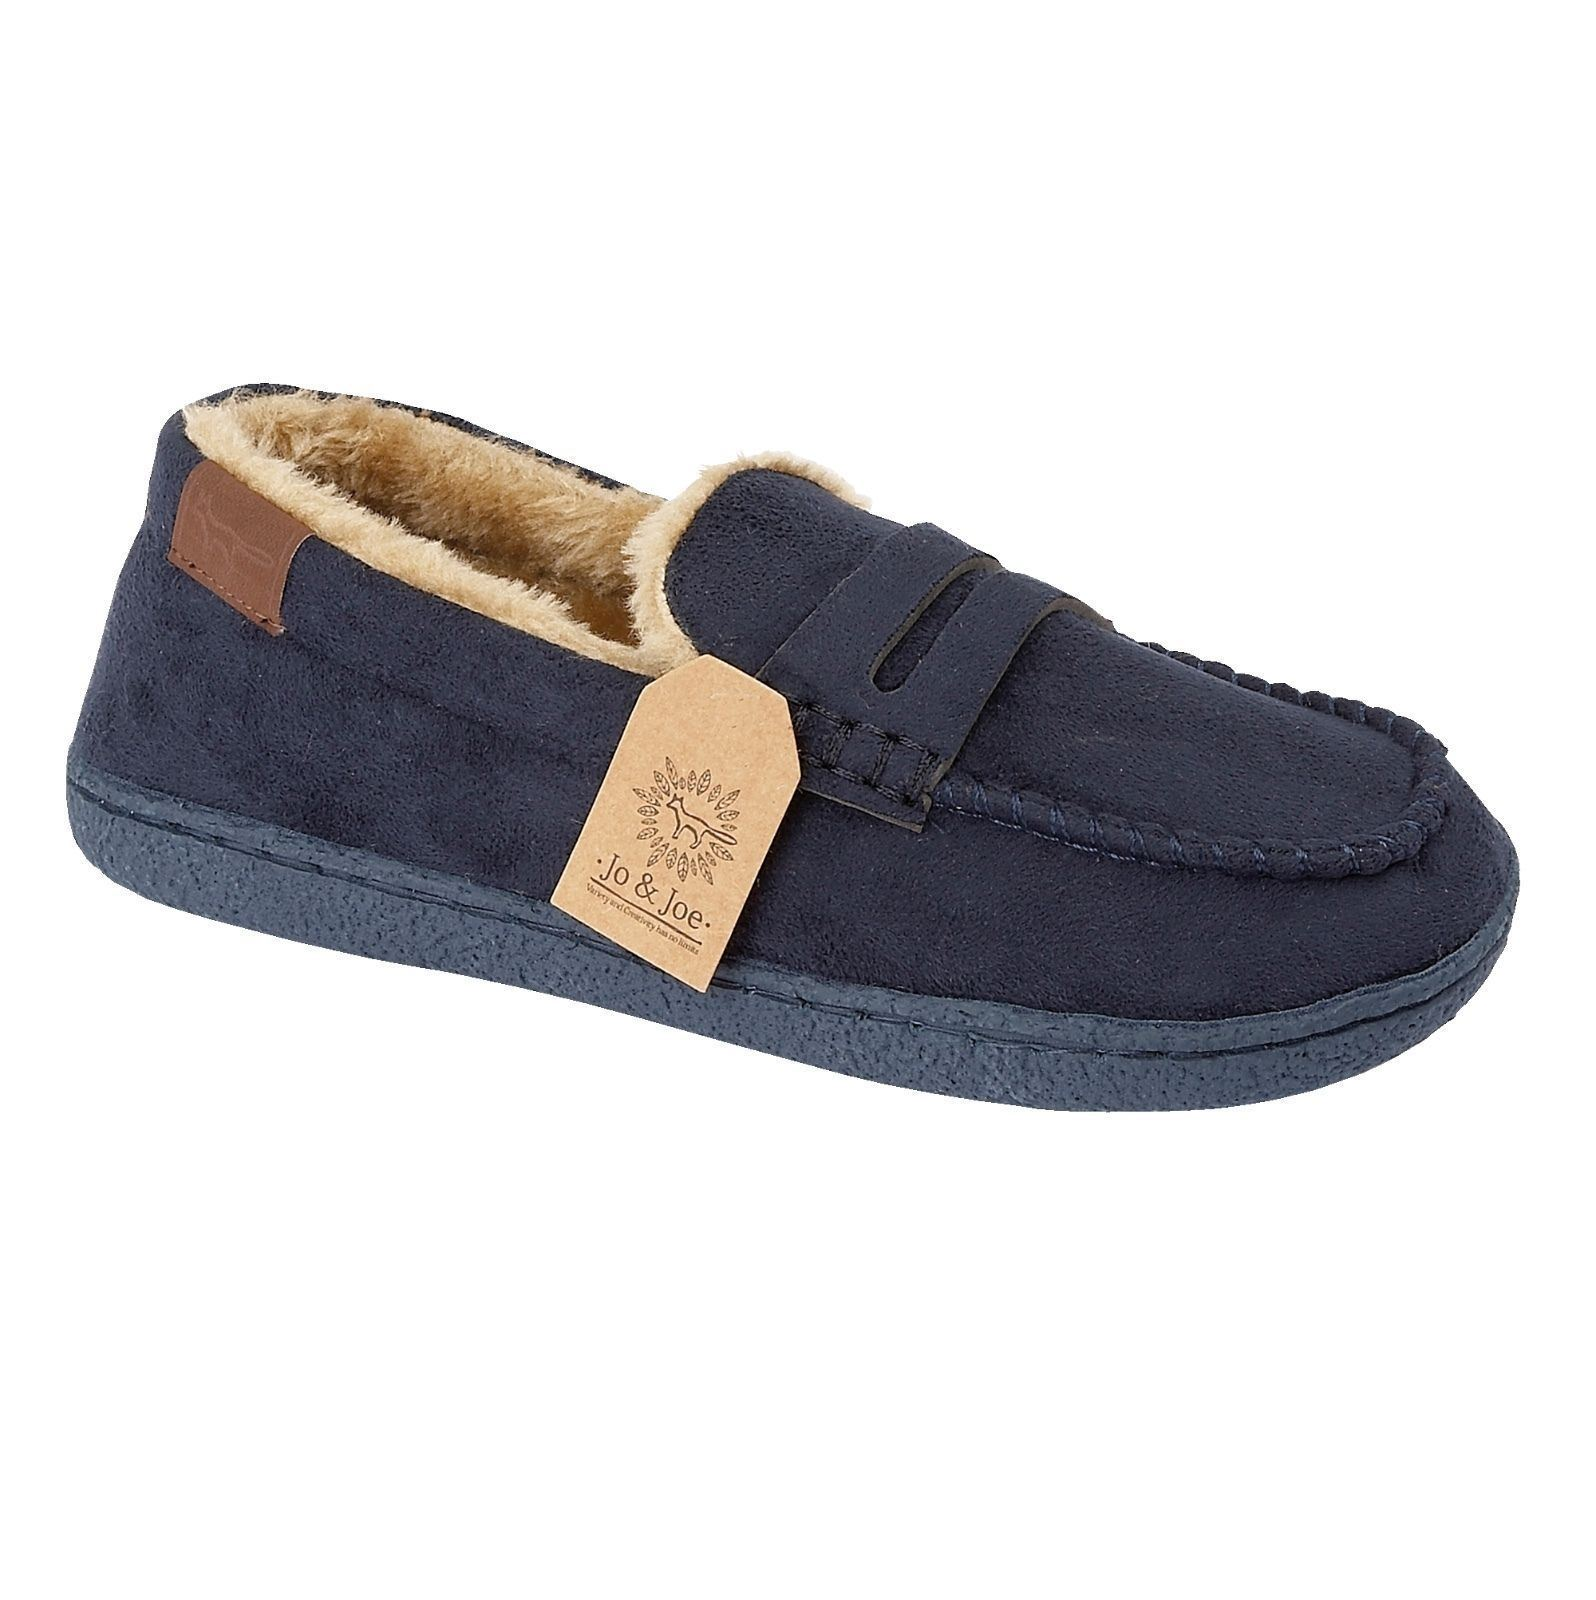 Mens-Faux-Suede-Leather-Moccasin-Slippers-Loafers-Casual-Shoes miniatura 21